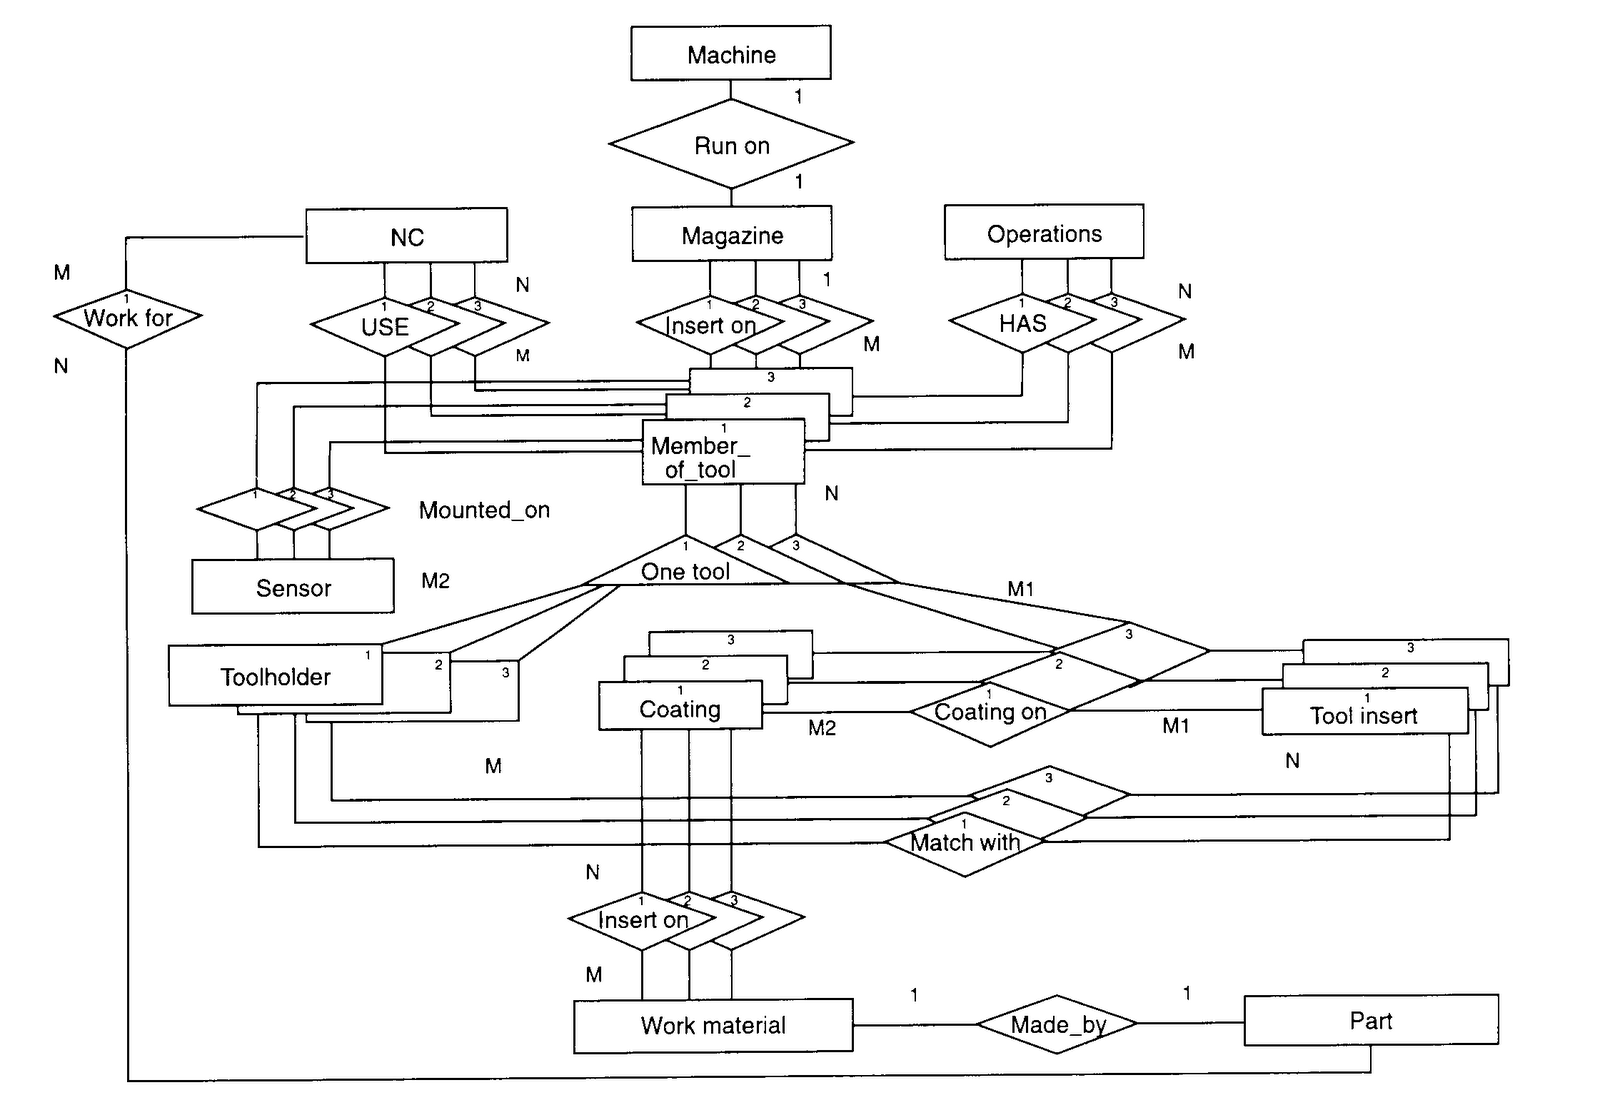 Inventory Control Flow Diagram Internal Telephone Extension Wiring Free Download Dfd For Management System